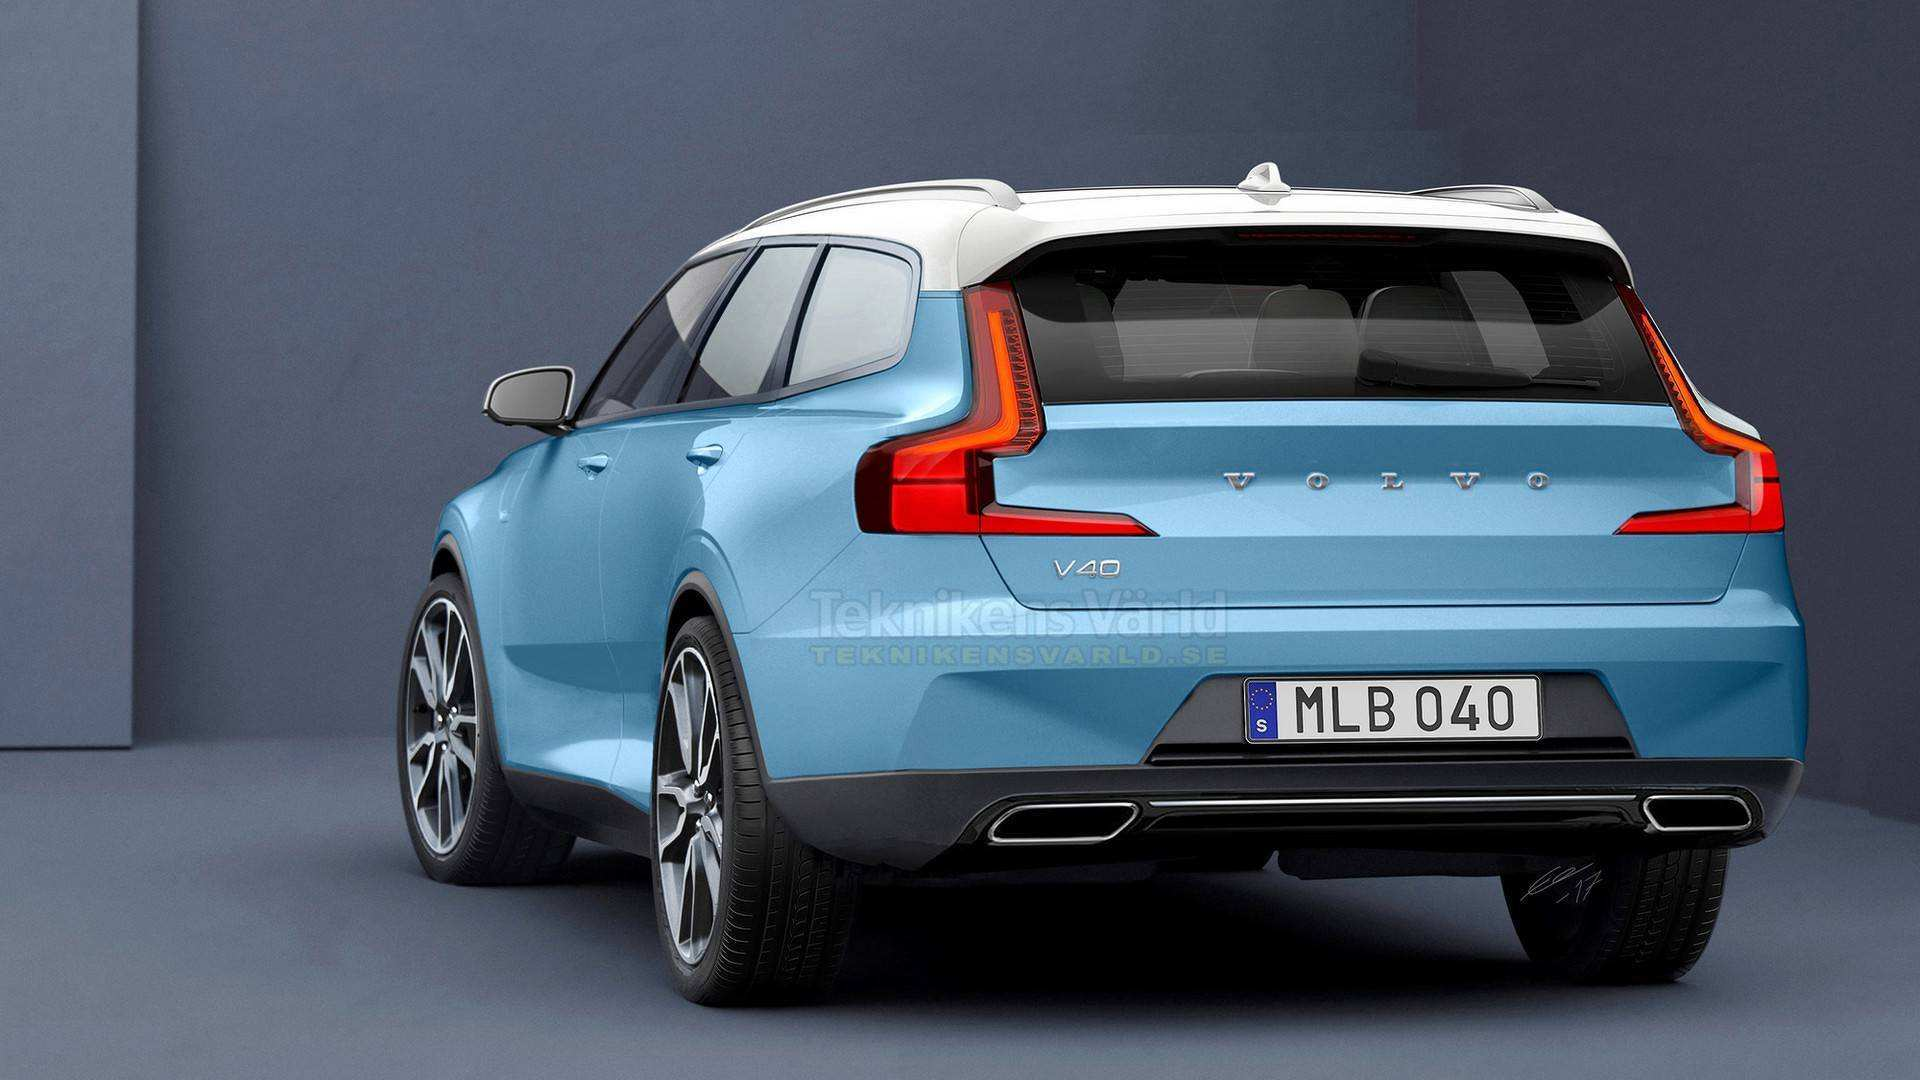 82 All New Volvo V40 New Model 2020 Ratings